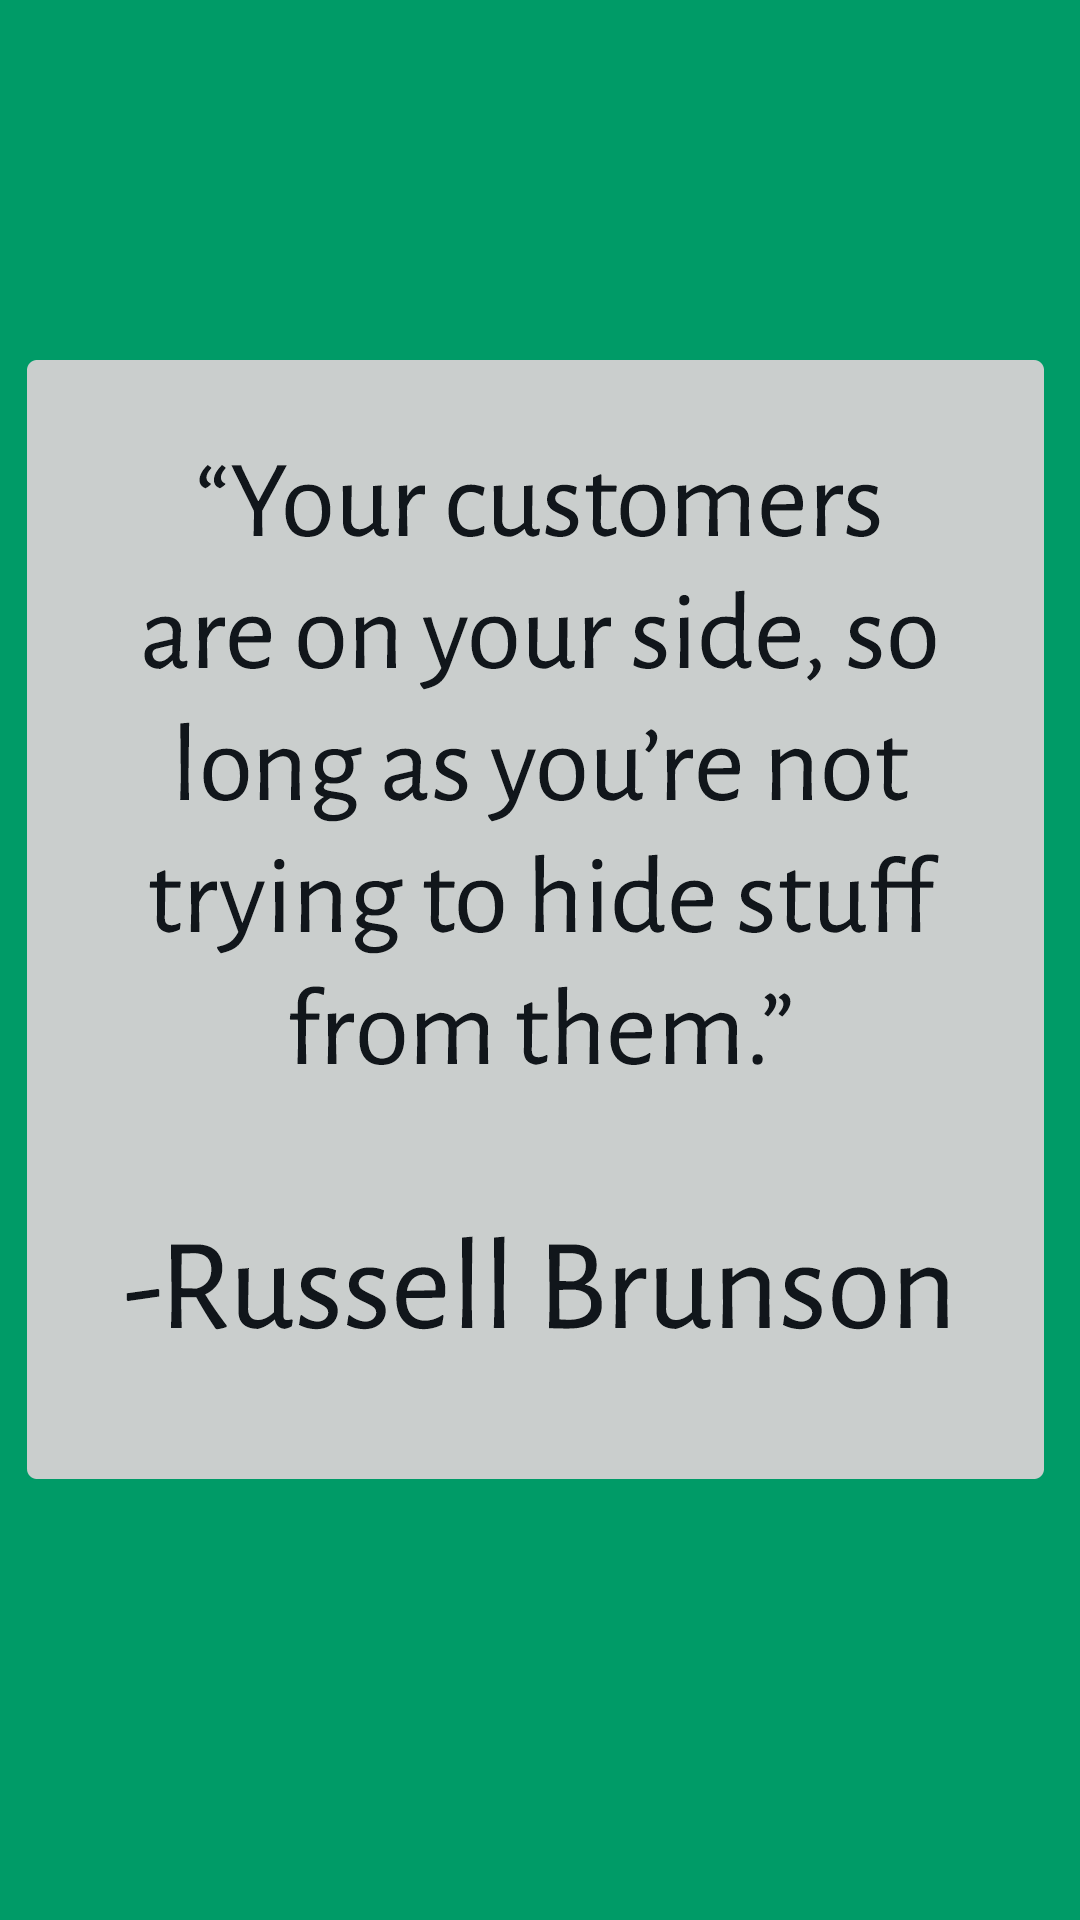 russell brunson quote pin